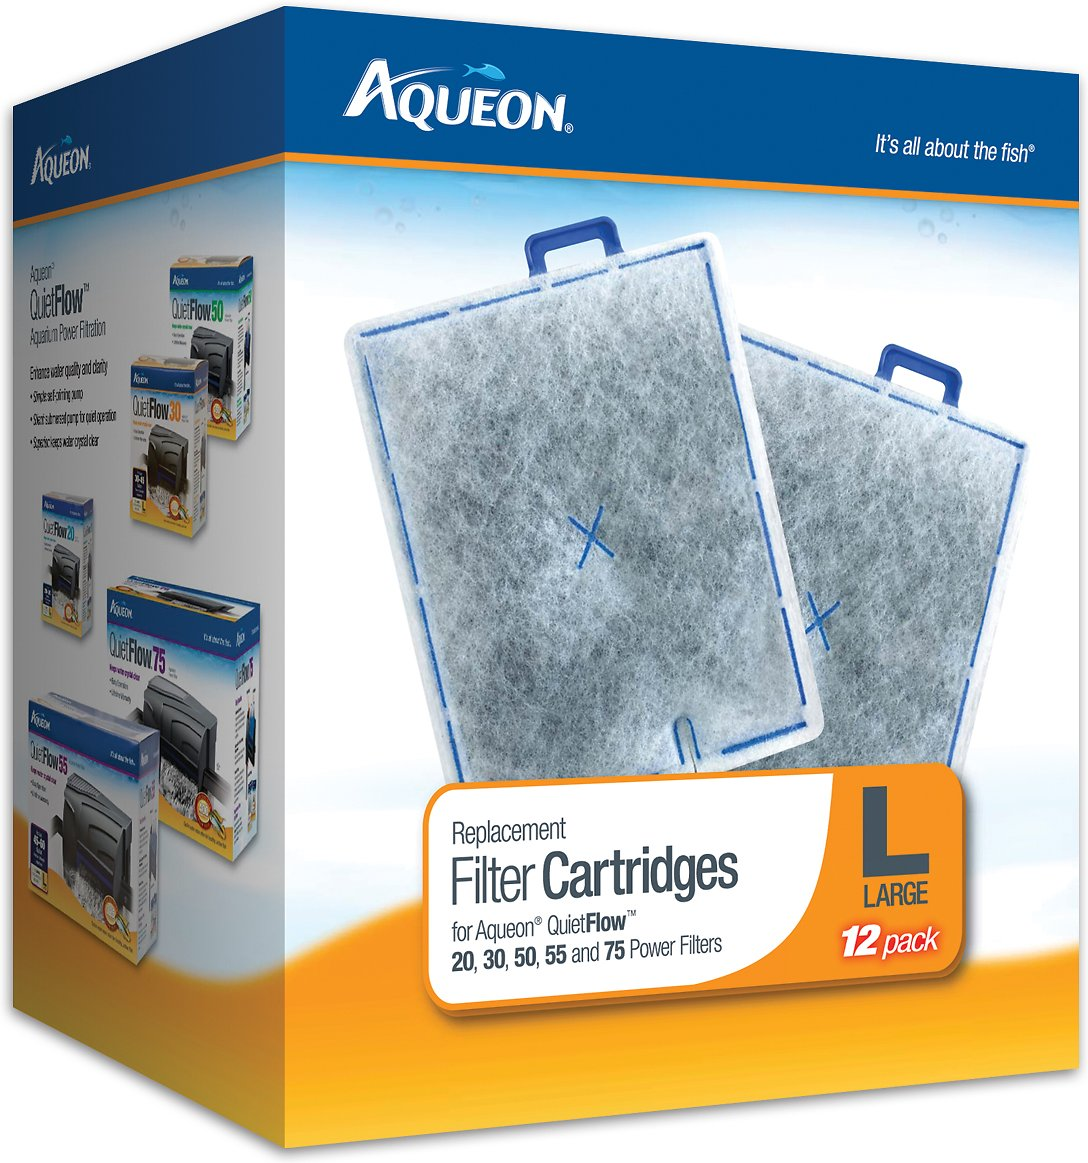 Aqueon Large Filter Cartridge Replacement Image